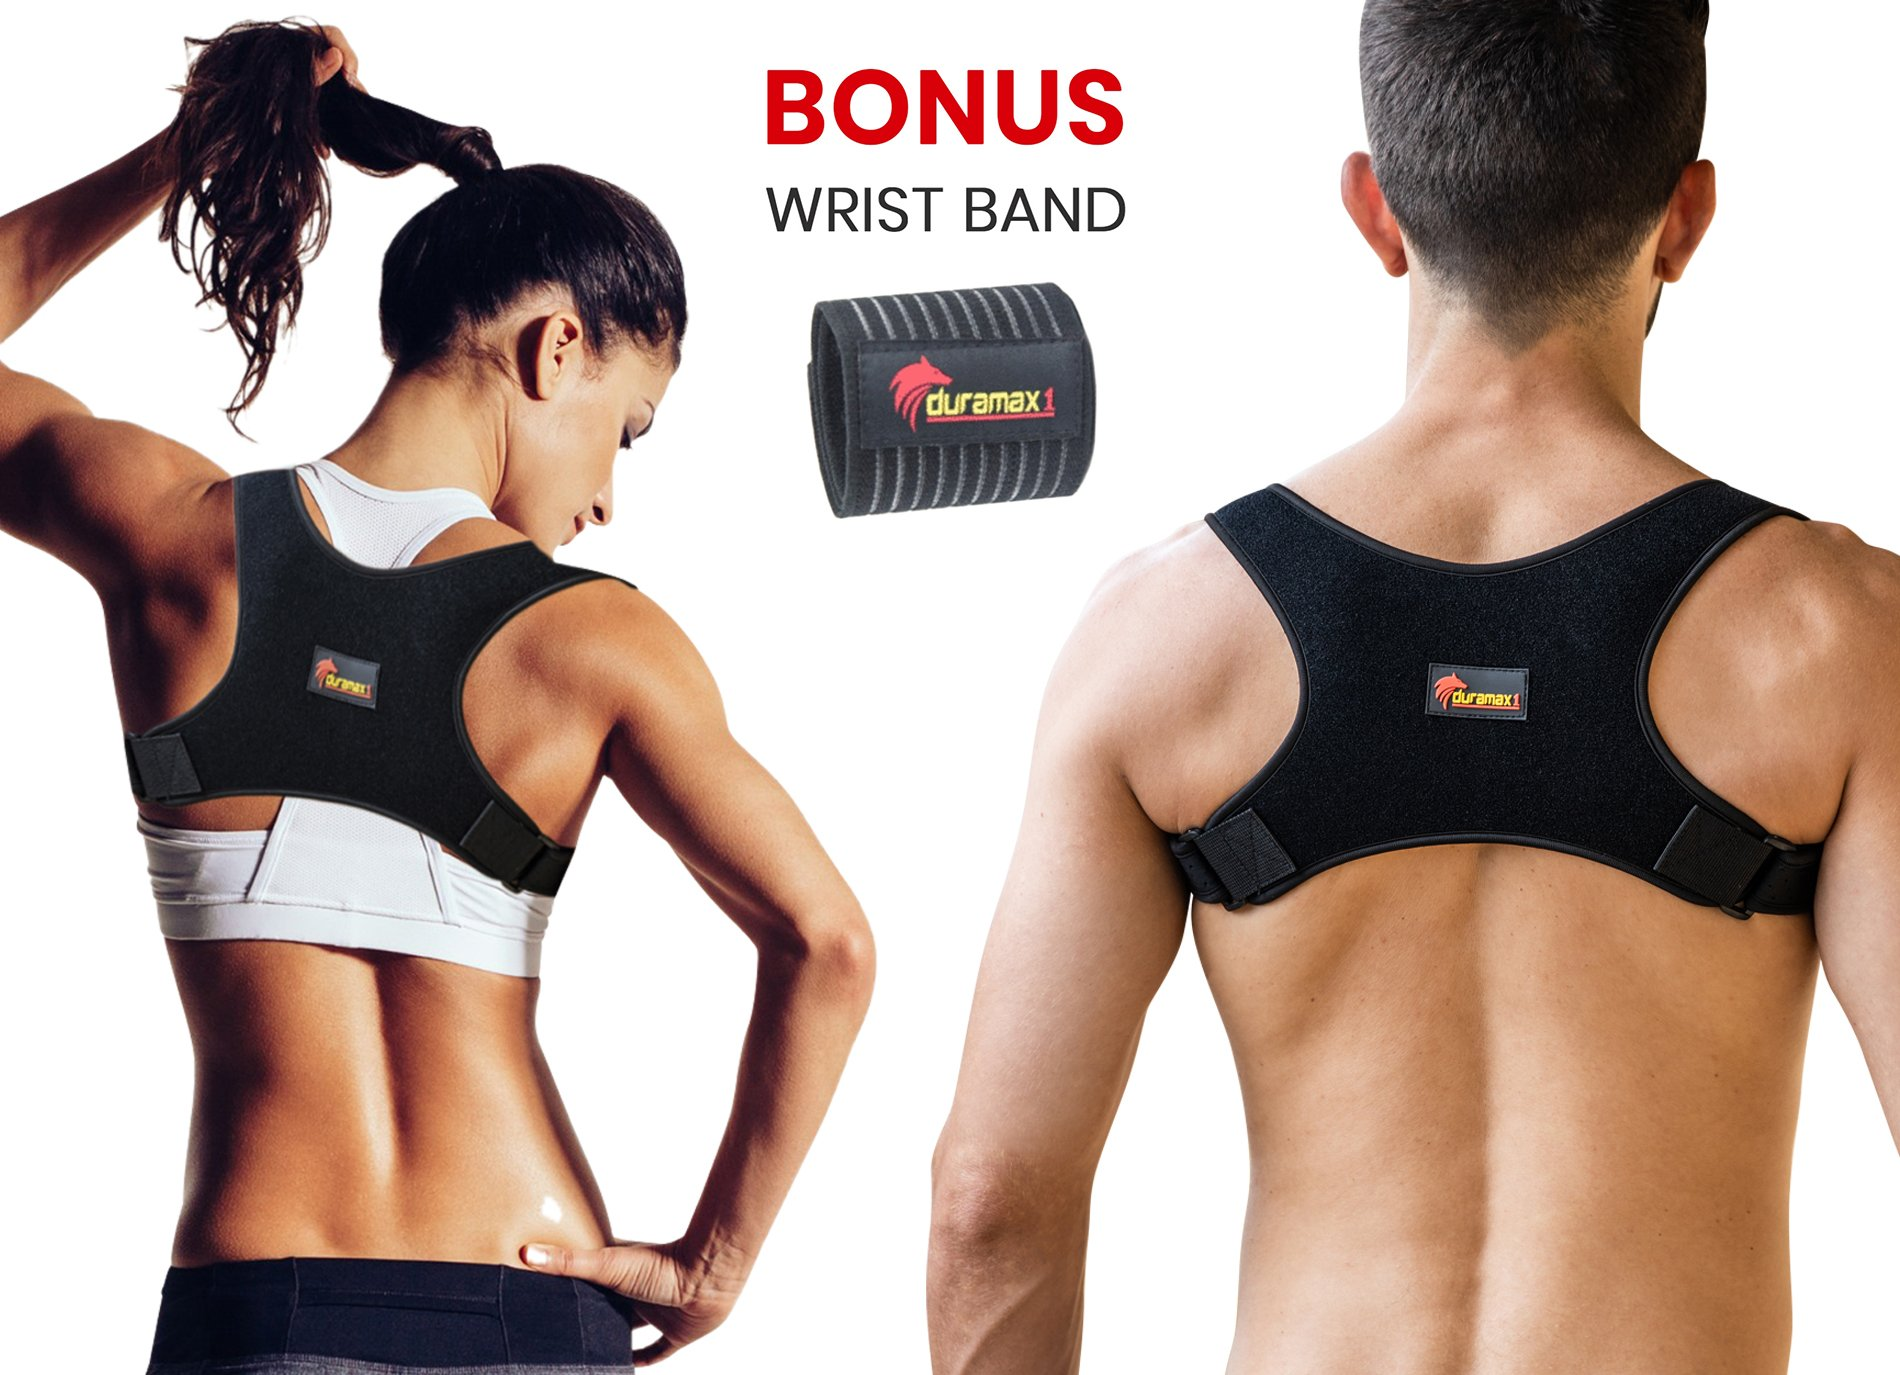 Premium Back Posture Corrector for Men and Women + Free Wrist Band by Duramax1- Comfortable Durable Clavicle Shoulder Strap | Upper Back Brace | Straighten Body Position & Boost Confidence